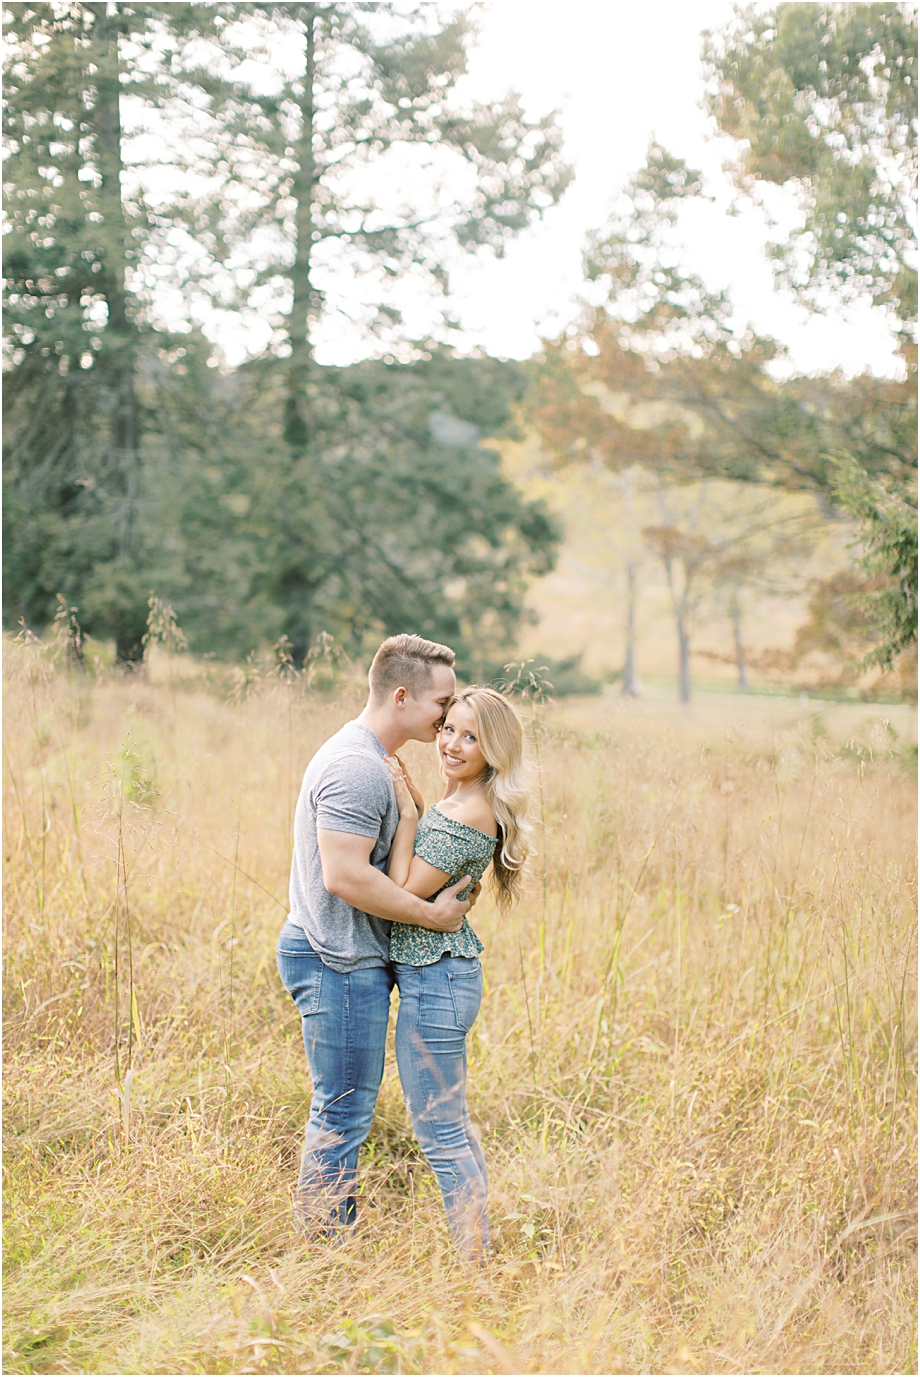 Valley Forge Engagement Session | Sarah Canning Photography